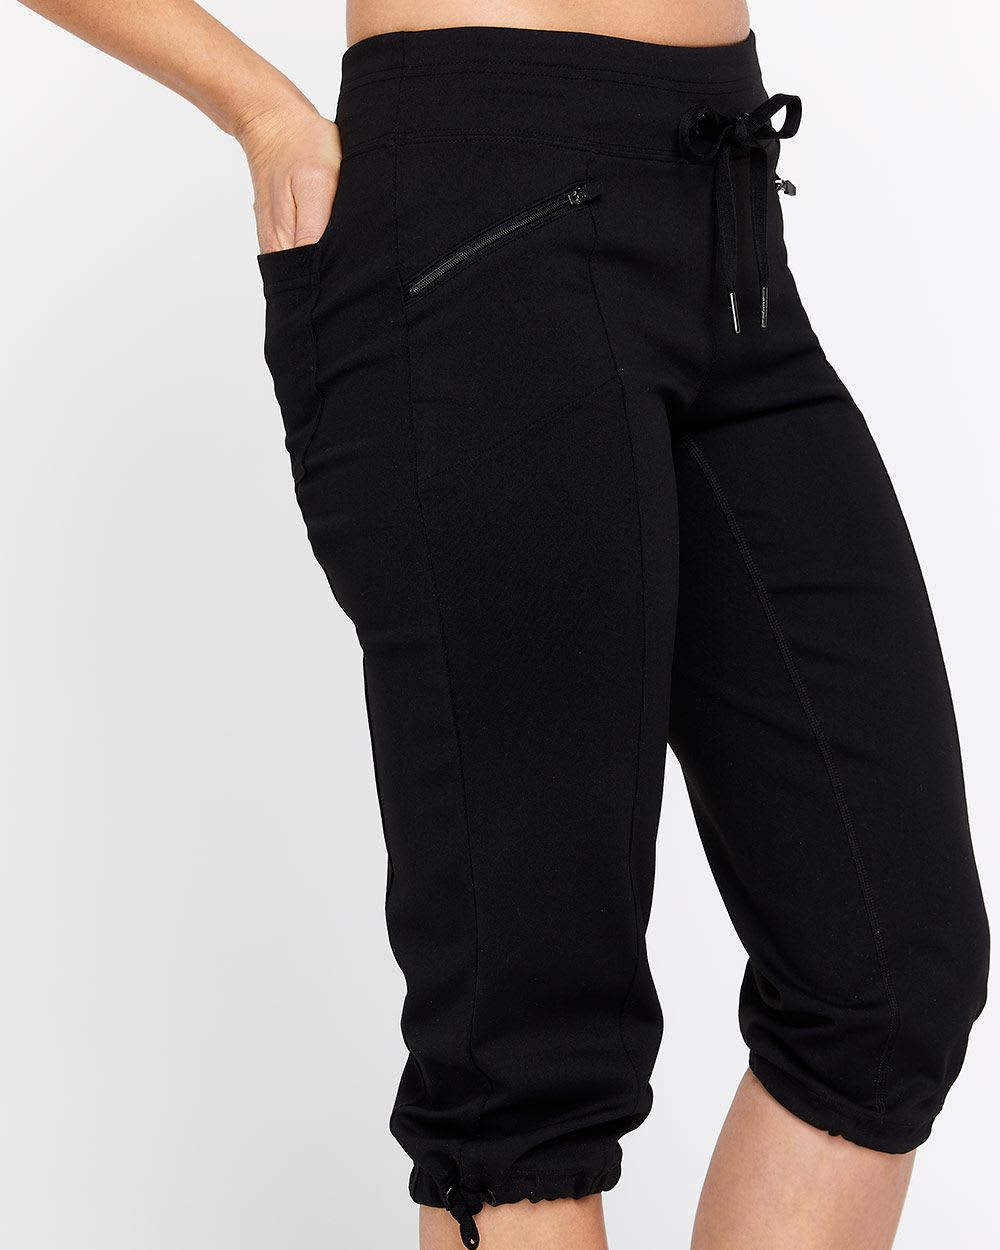 Hyba Urban Capri Pants